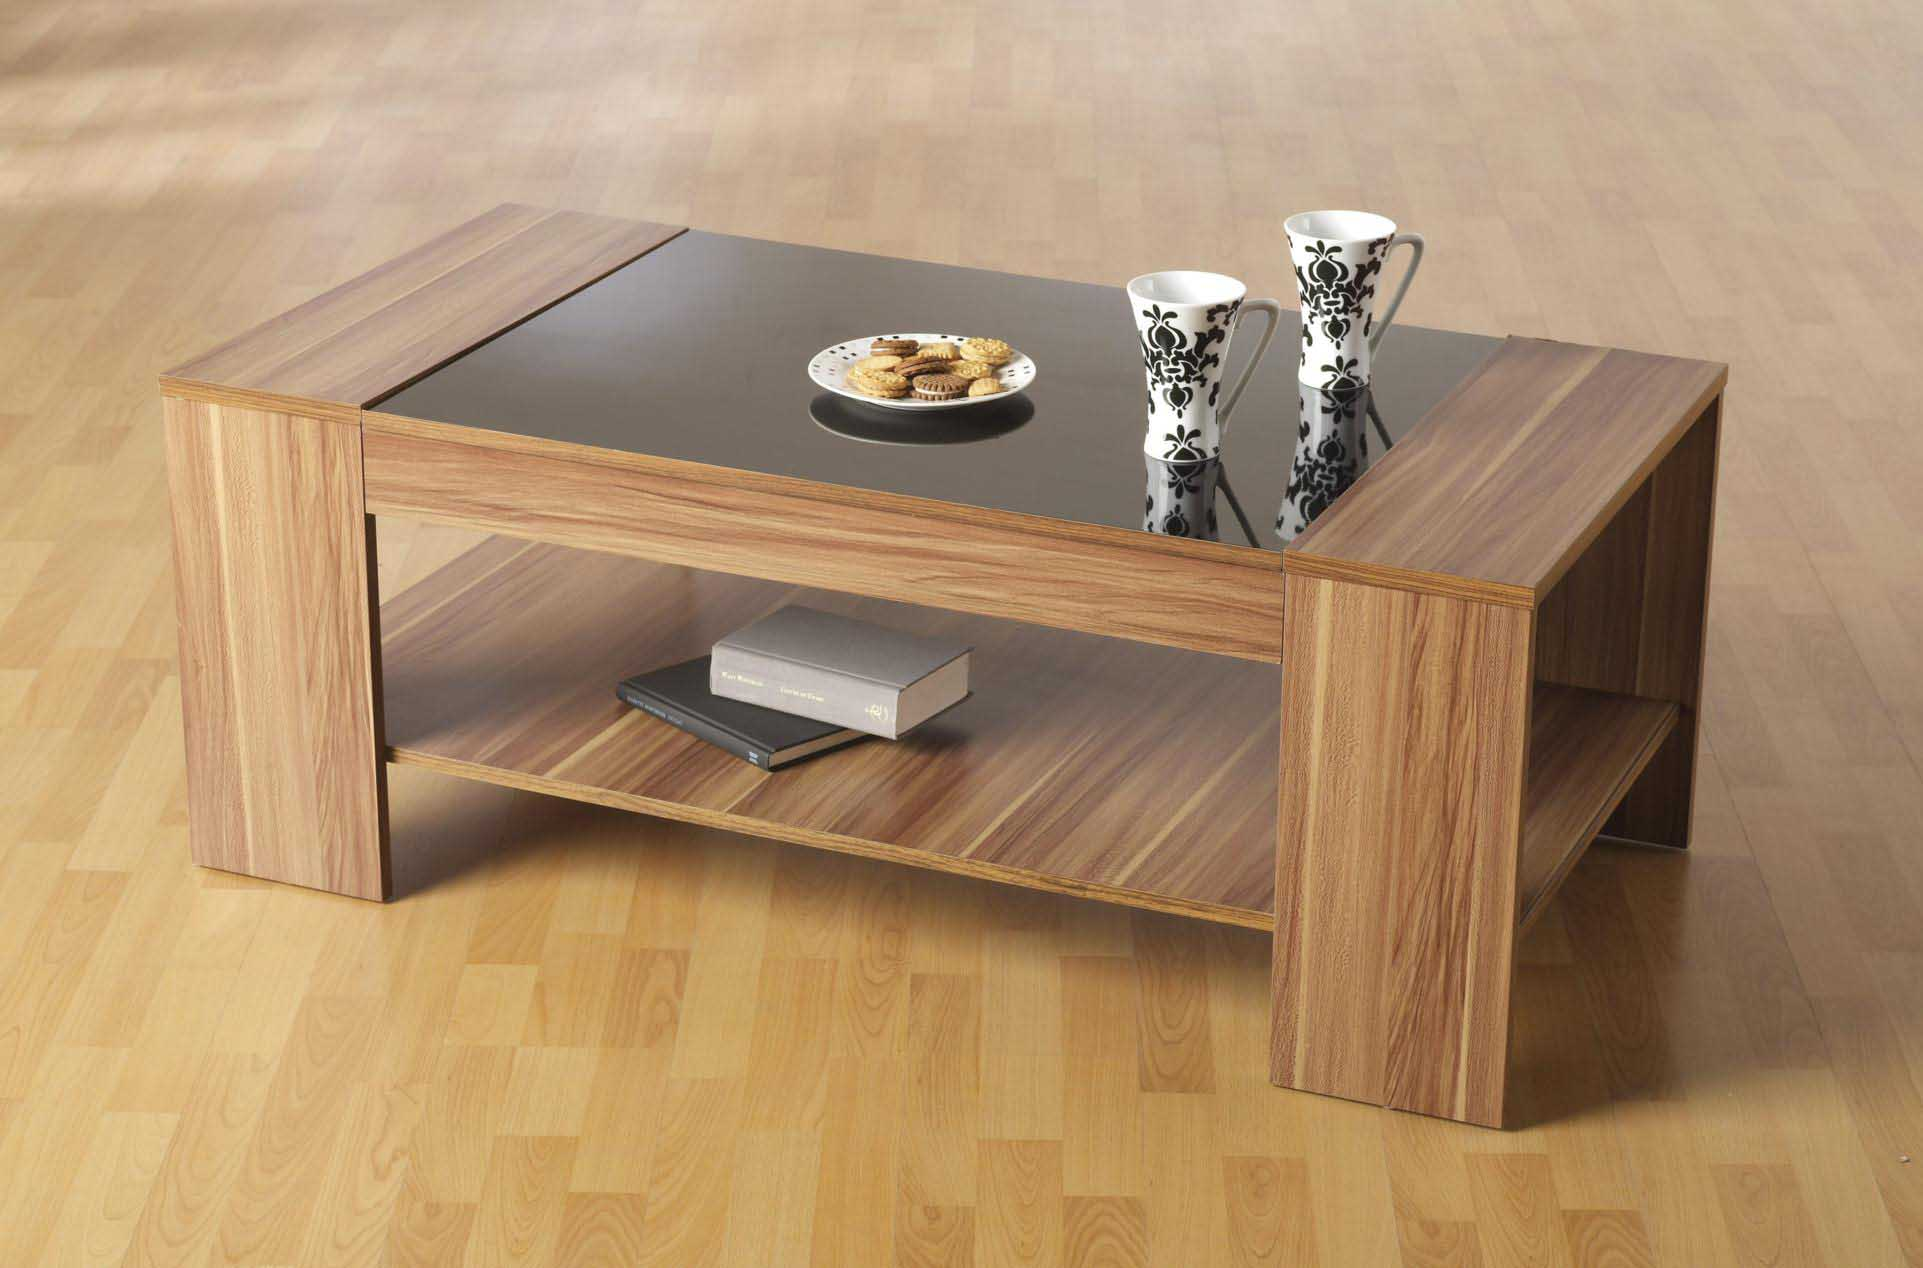 Wooden Coffee Table Designs With Glass Top Eton Solid Oak Living Room  Lounge Furniture Storage Coffee